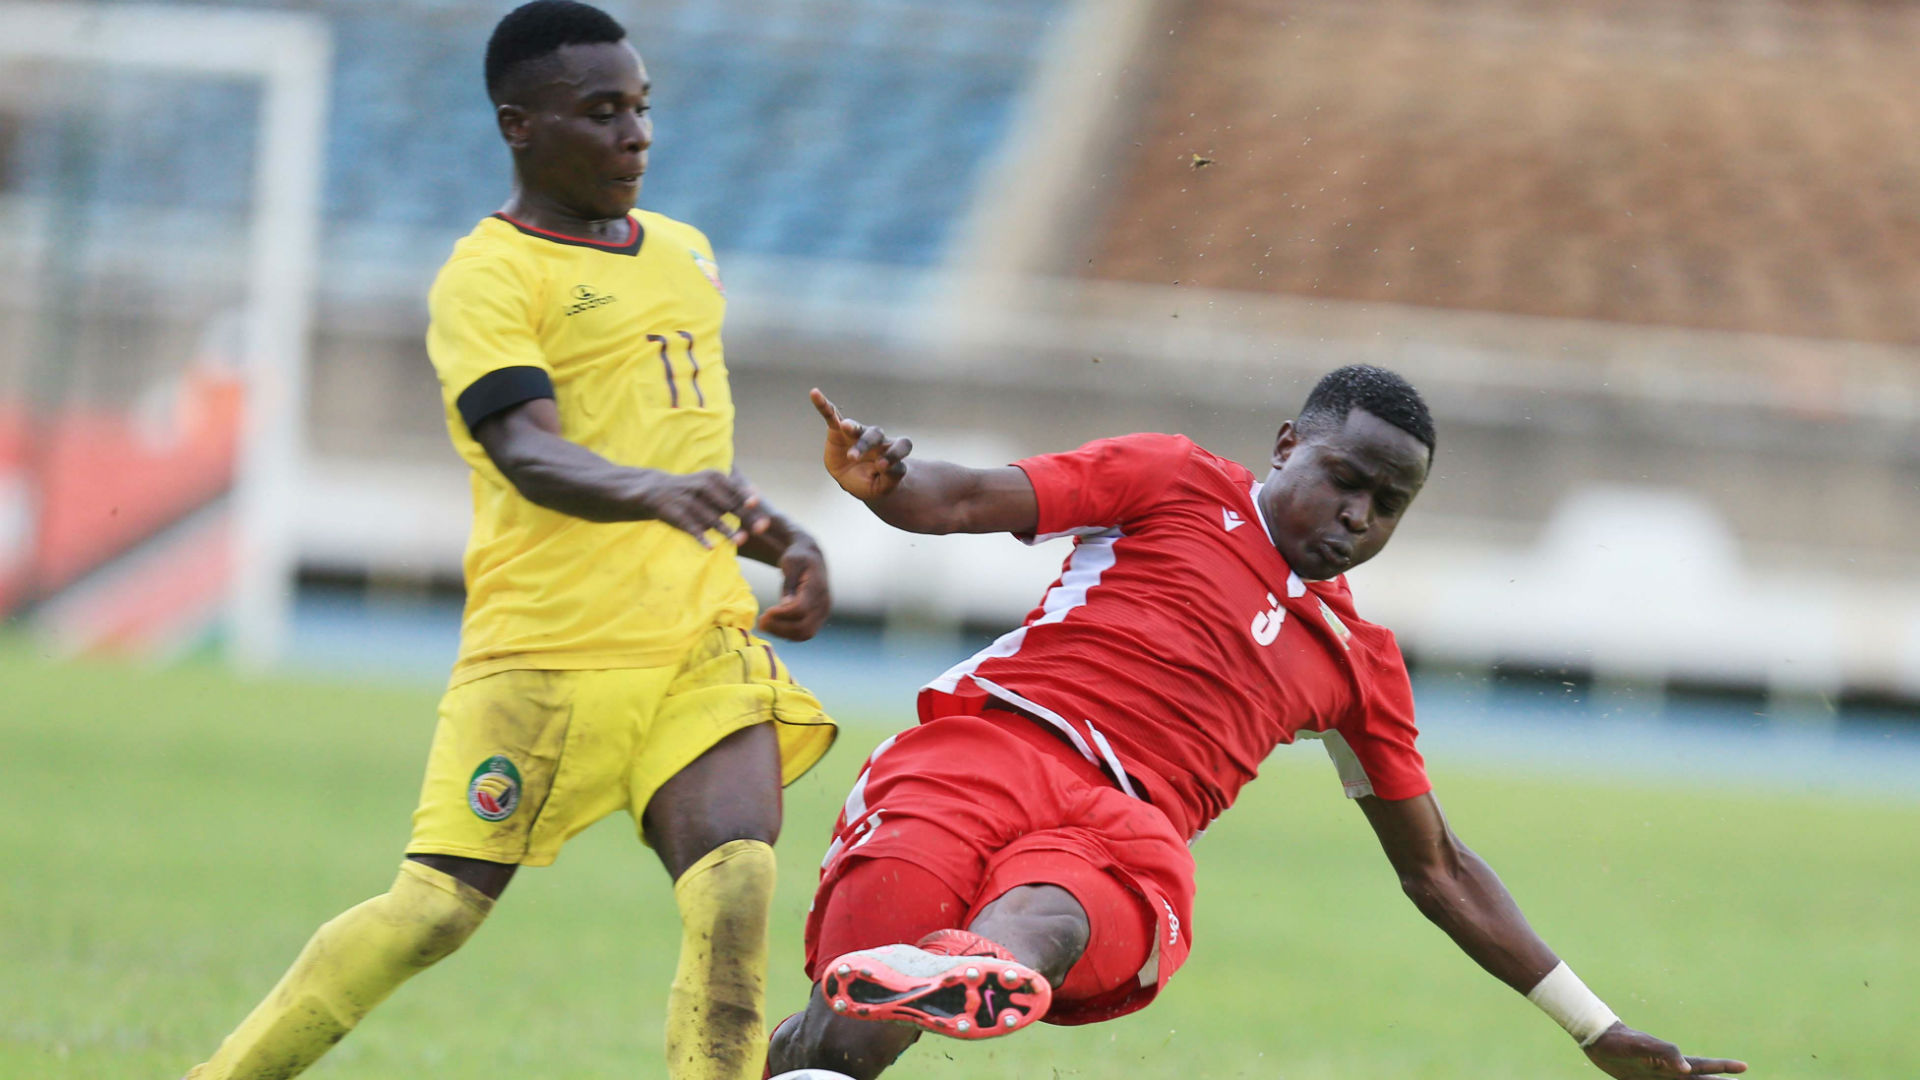 Afcon 2021 Qualifier: Poor accommodation may cost Kenya against Egypt - Omollo